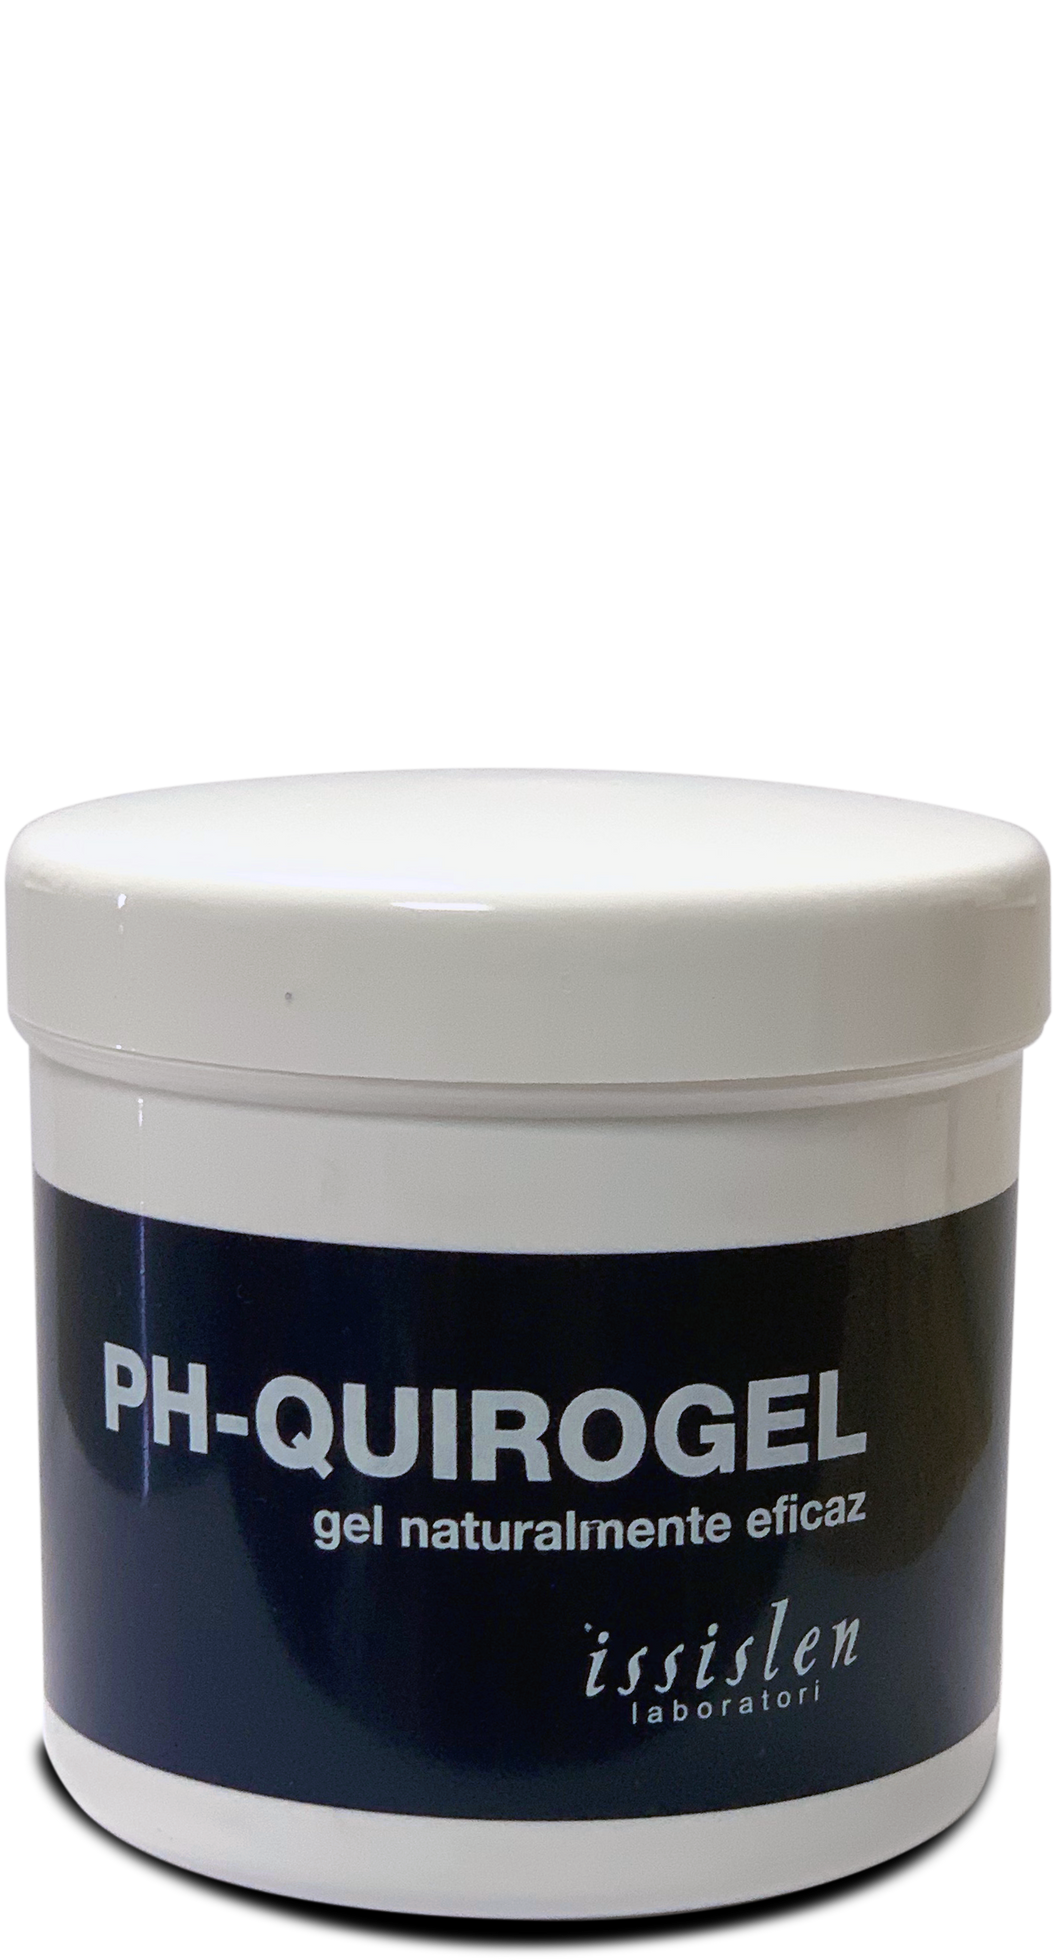 Ph Quirogel 500ml